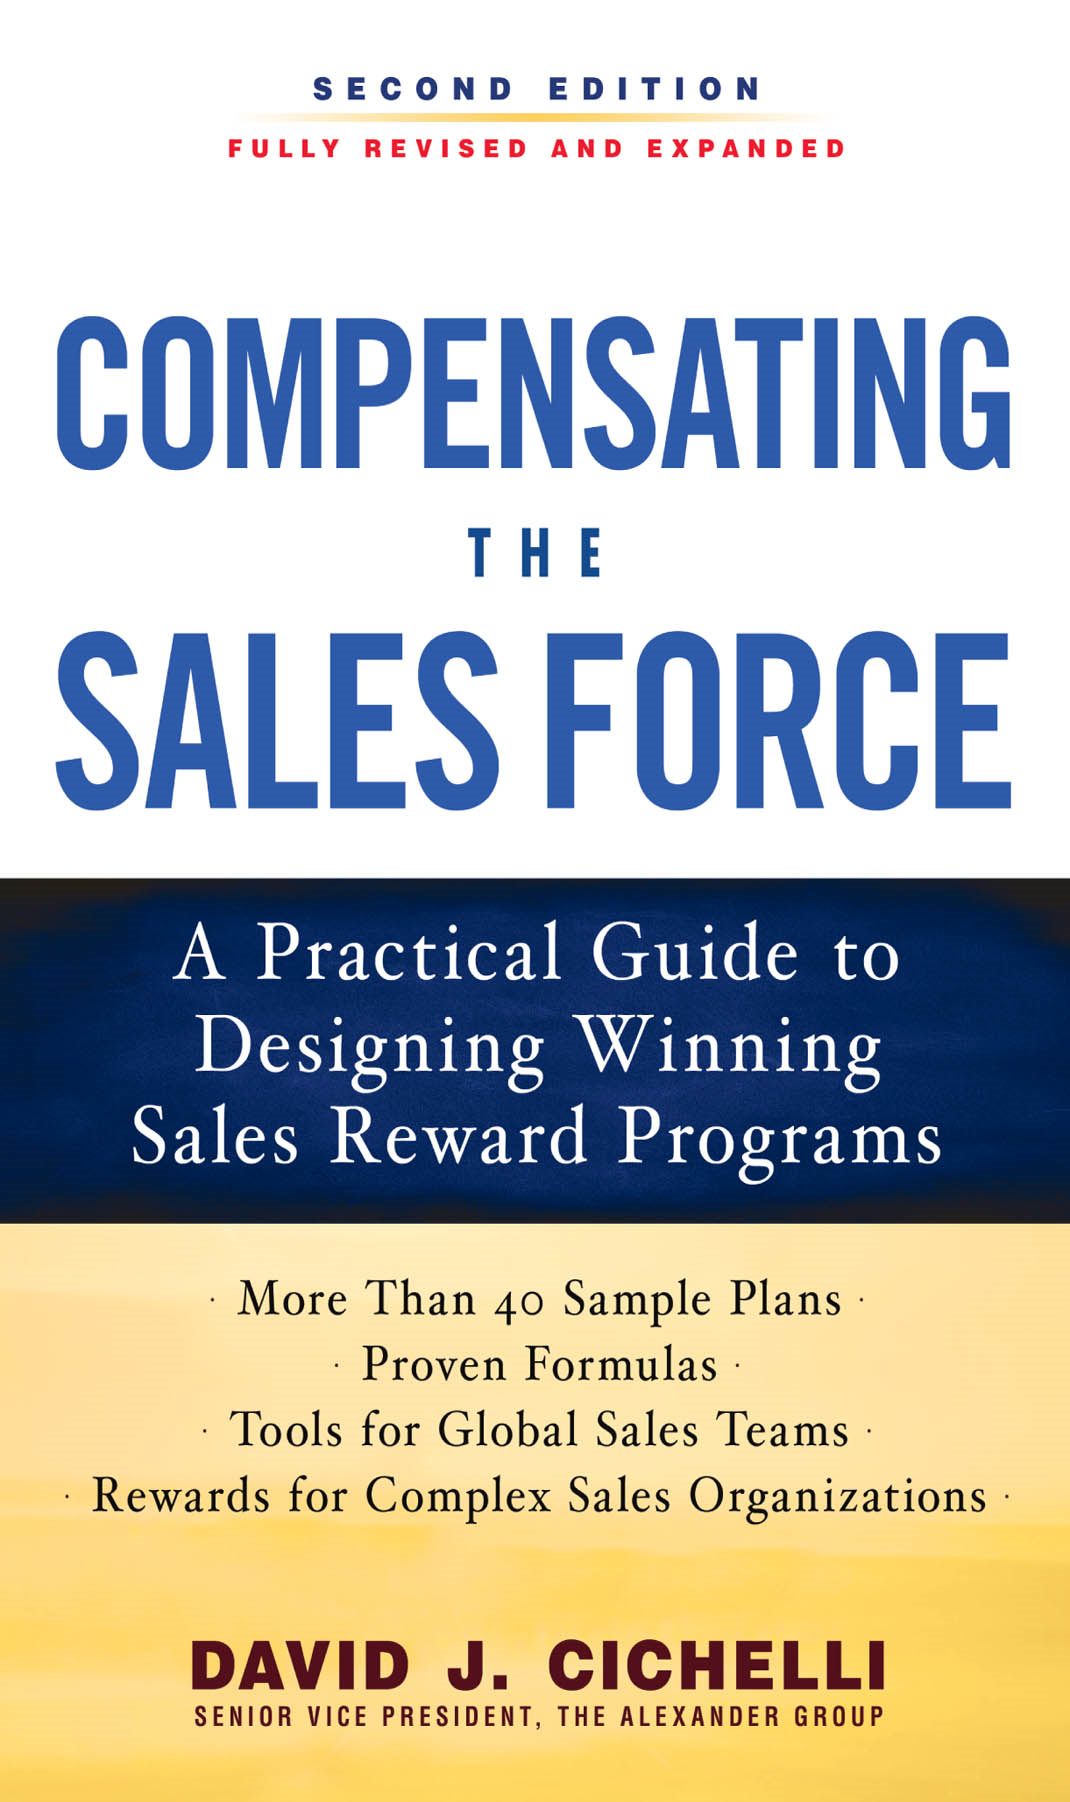 Compensating the Sales Force: A Practical Guide to Designing Winning Sales Reward Programs, Second Edition By: David J. Cichelli